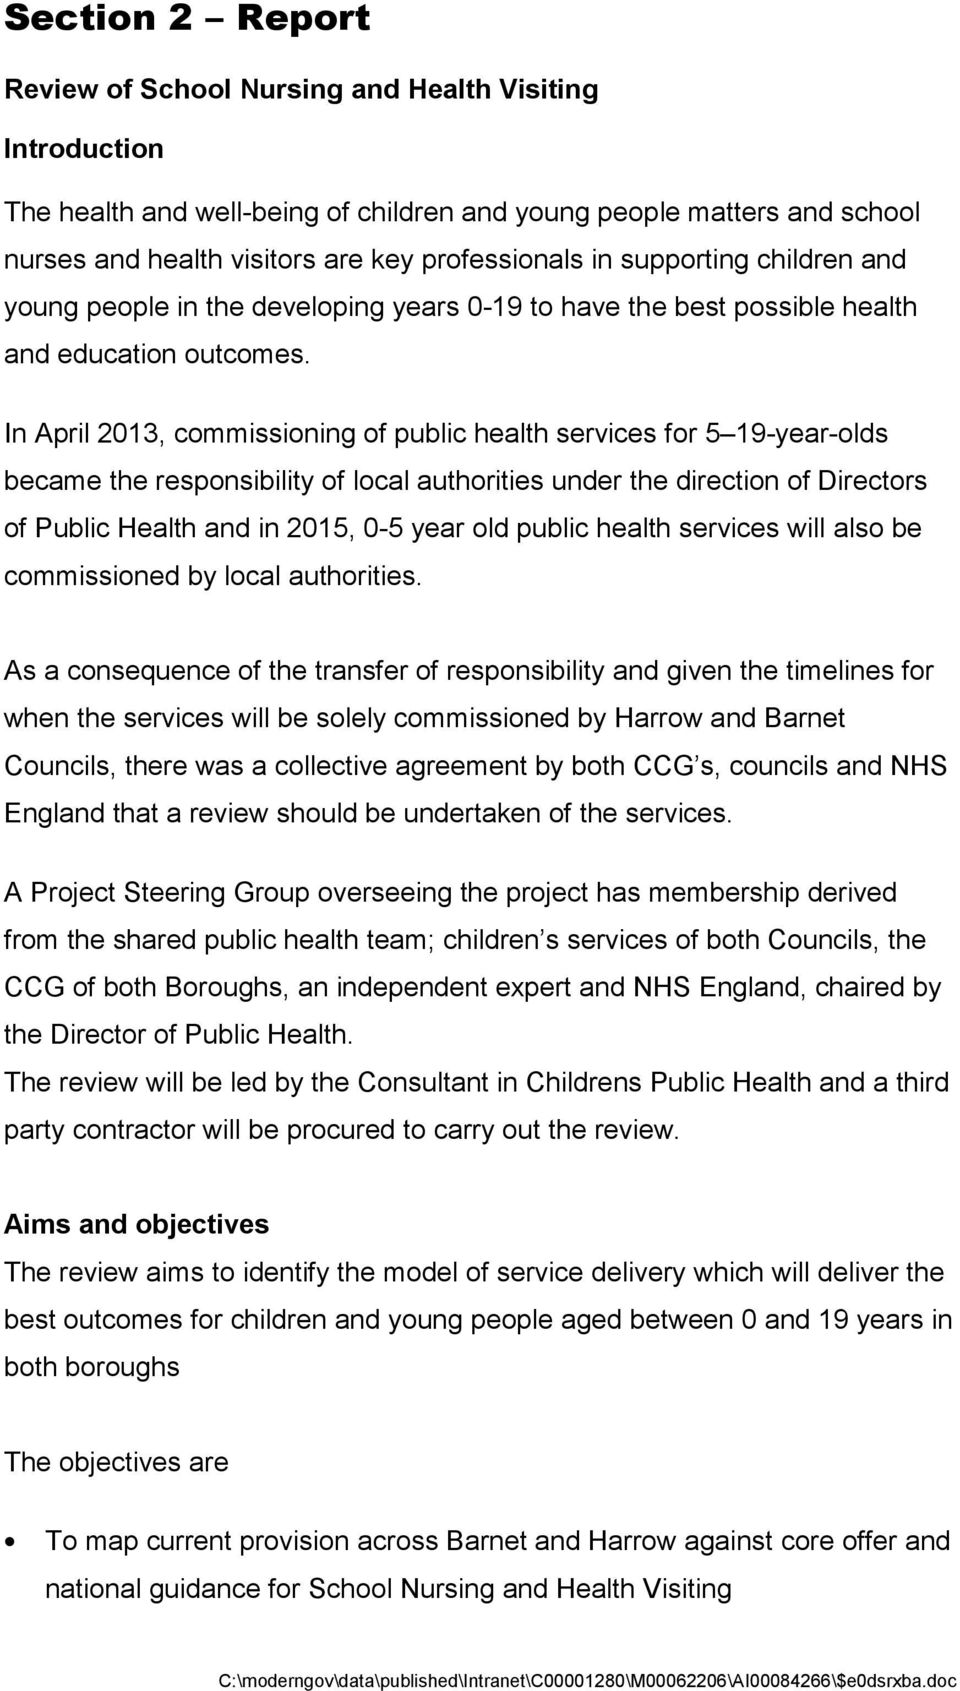 In April 2013, commissioning of public health services for 5 19-year-olds became the responsibility of local authorities under the direction of Directors of Public Health and in 2015, 0-5 year old